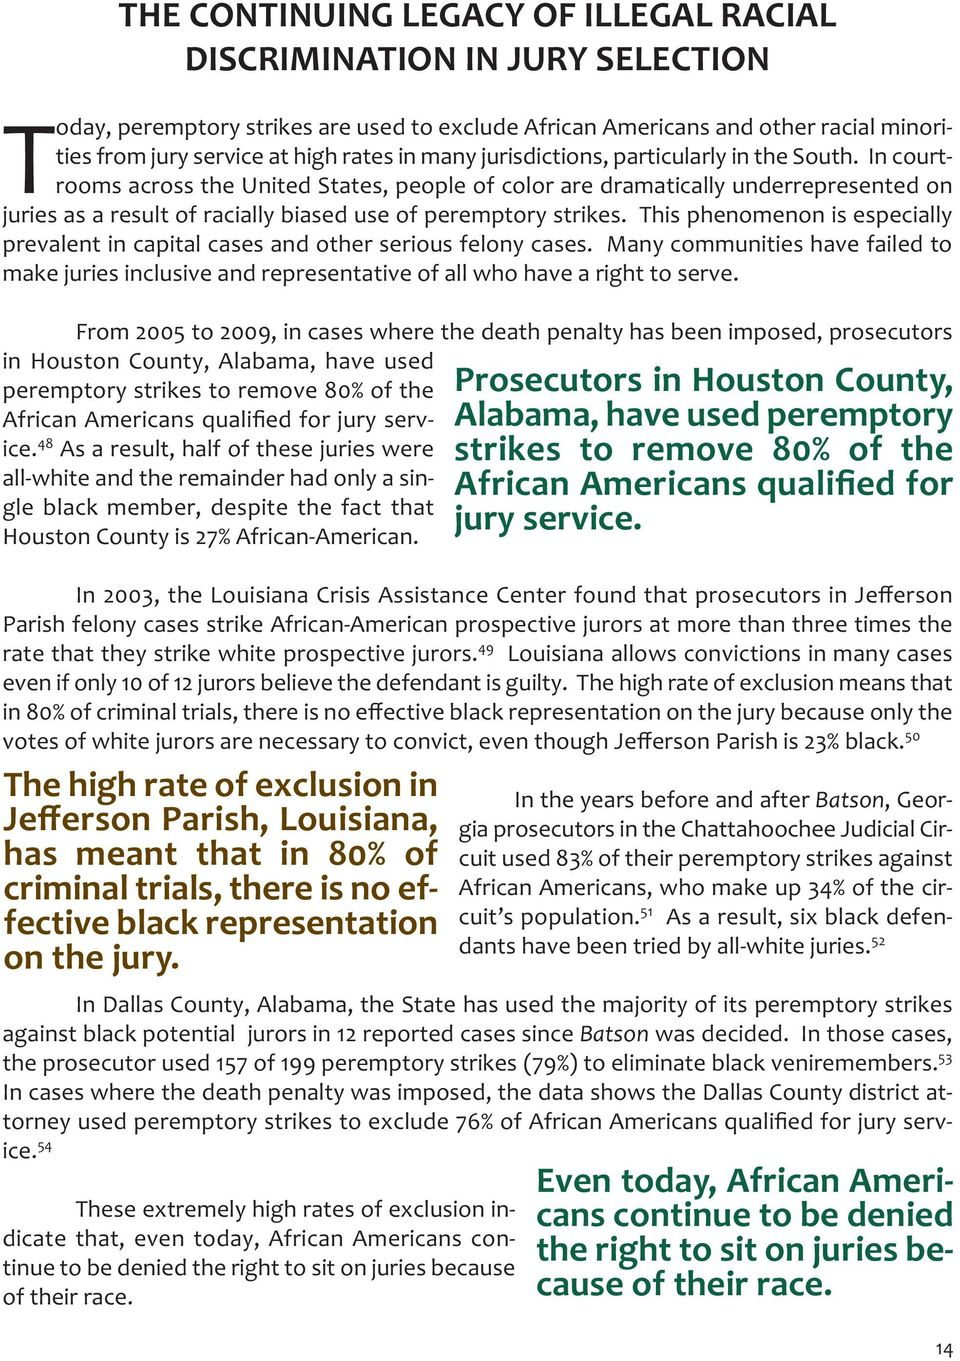 In courtrooms across the United States, people of color are dramatically underrepresented on juries as a result of racially biased use of peremptory strikes.